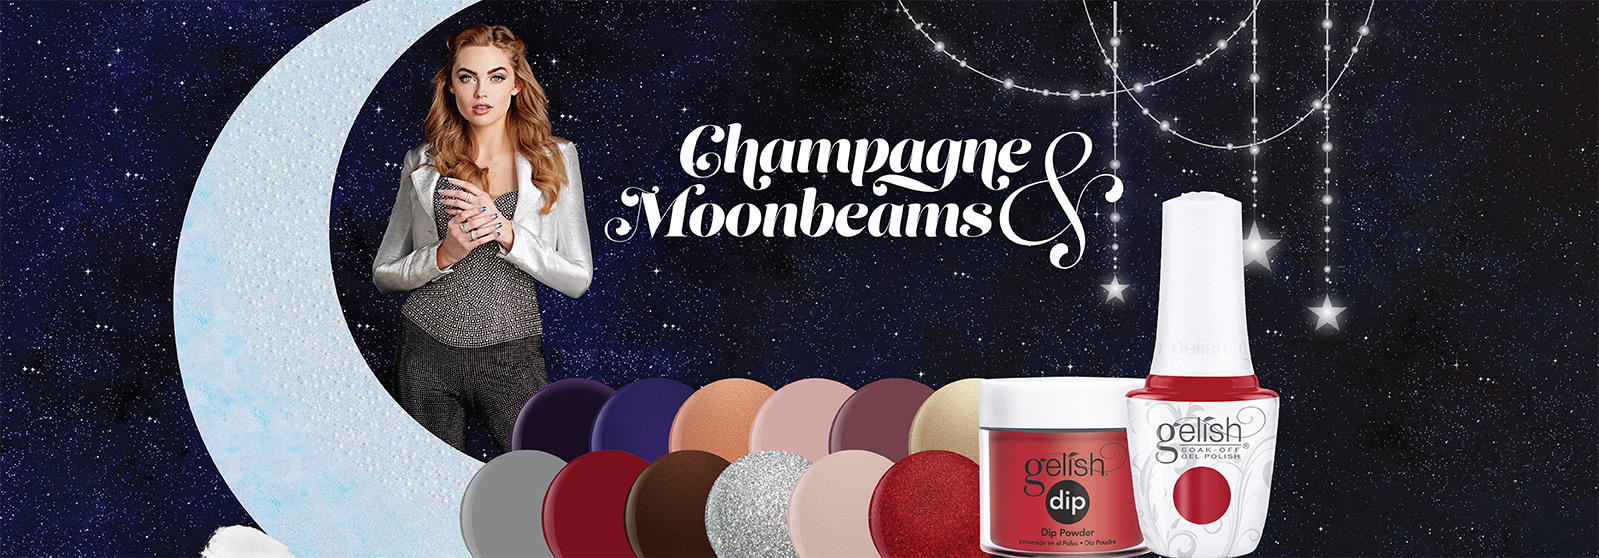 Champagne And Moonbeans - Collection Winter 2019